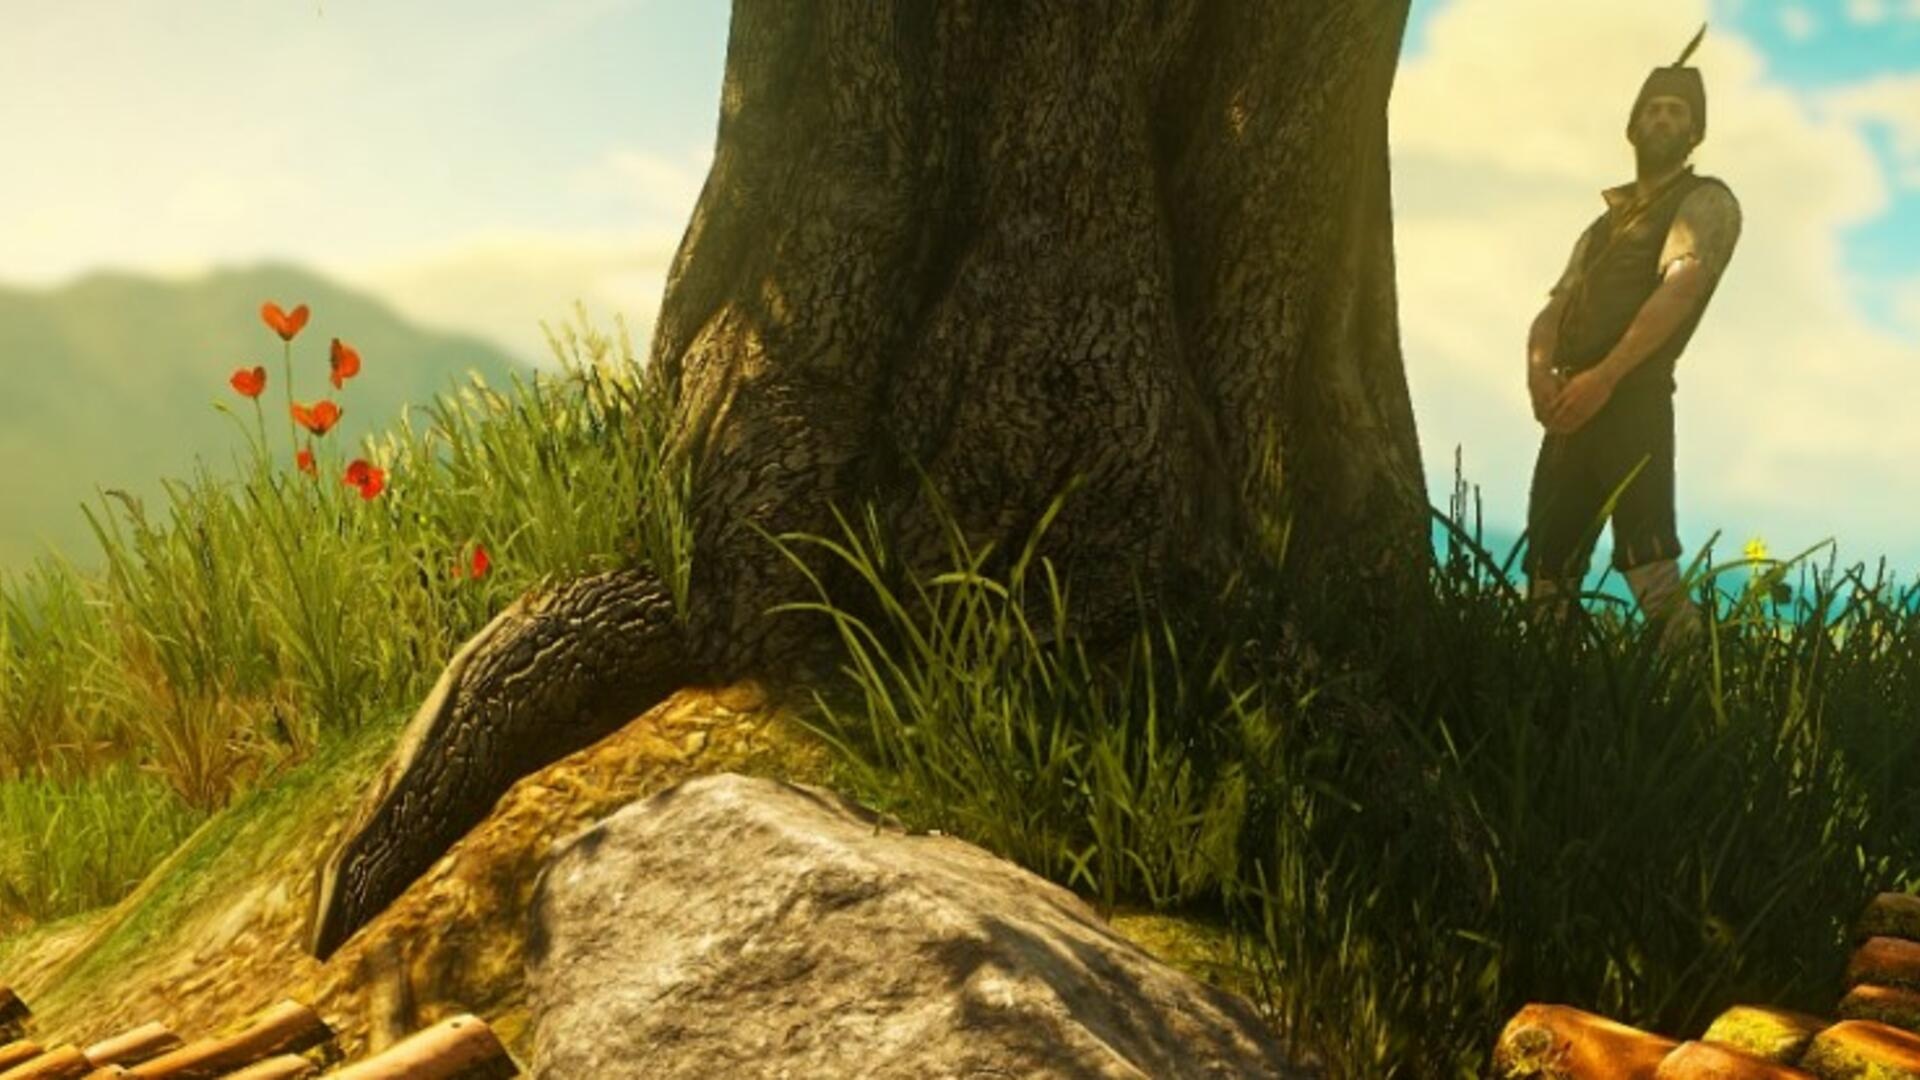 The Witcher 3 HD Rework Mod Gives the Game's Graphics a Big